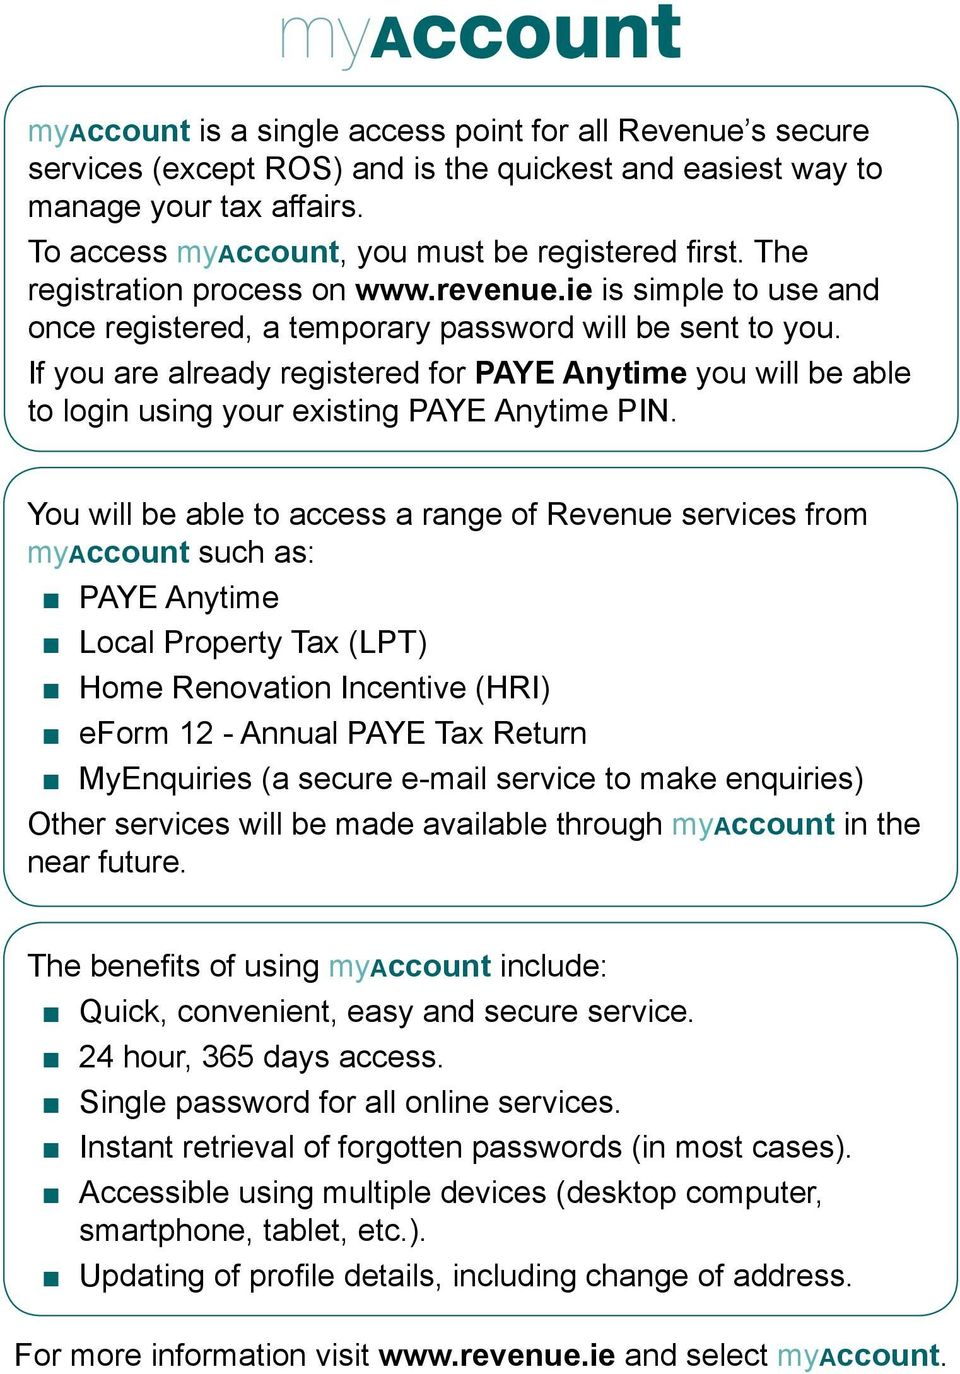 If you are already registered for PAYE Anytime you will be able to login using your existing PAYE Anytime PIN.